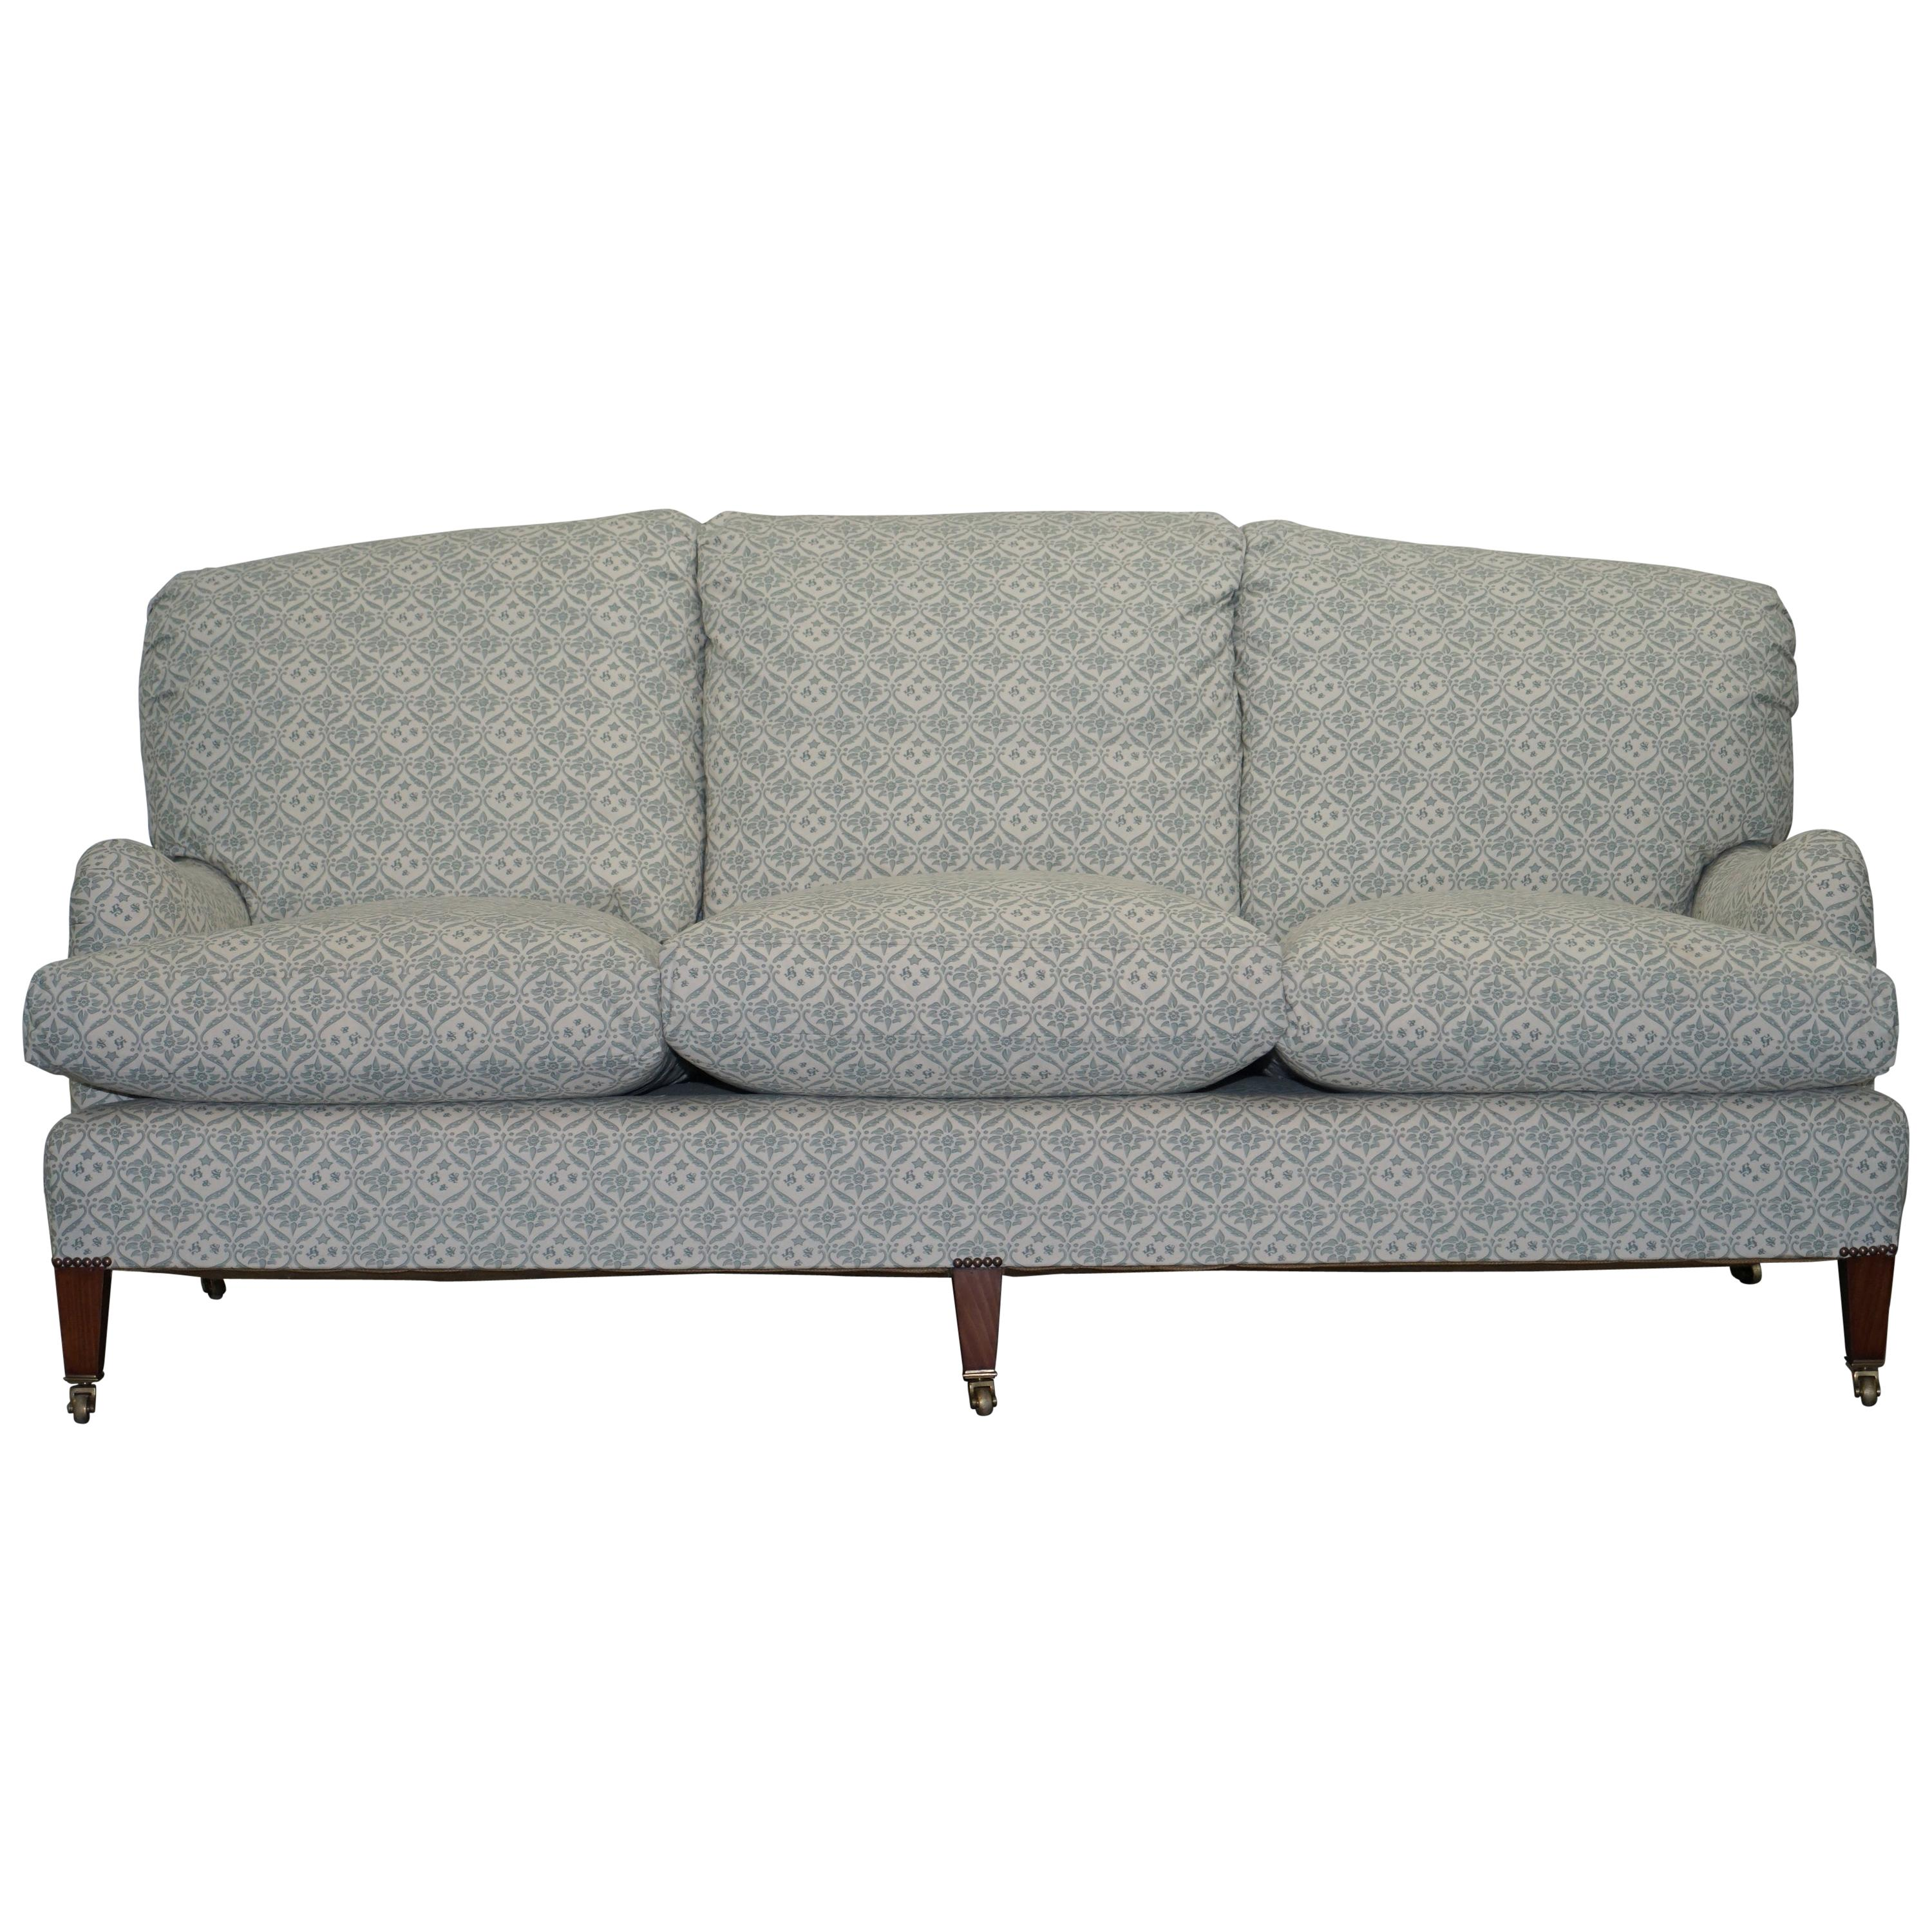 1 of 2 Howard & Sons Fully Stamped Sofa Feather Filled Cushions Ticking Fabric